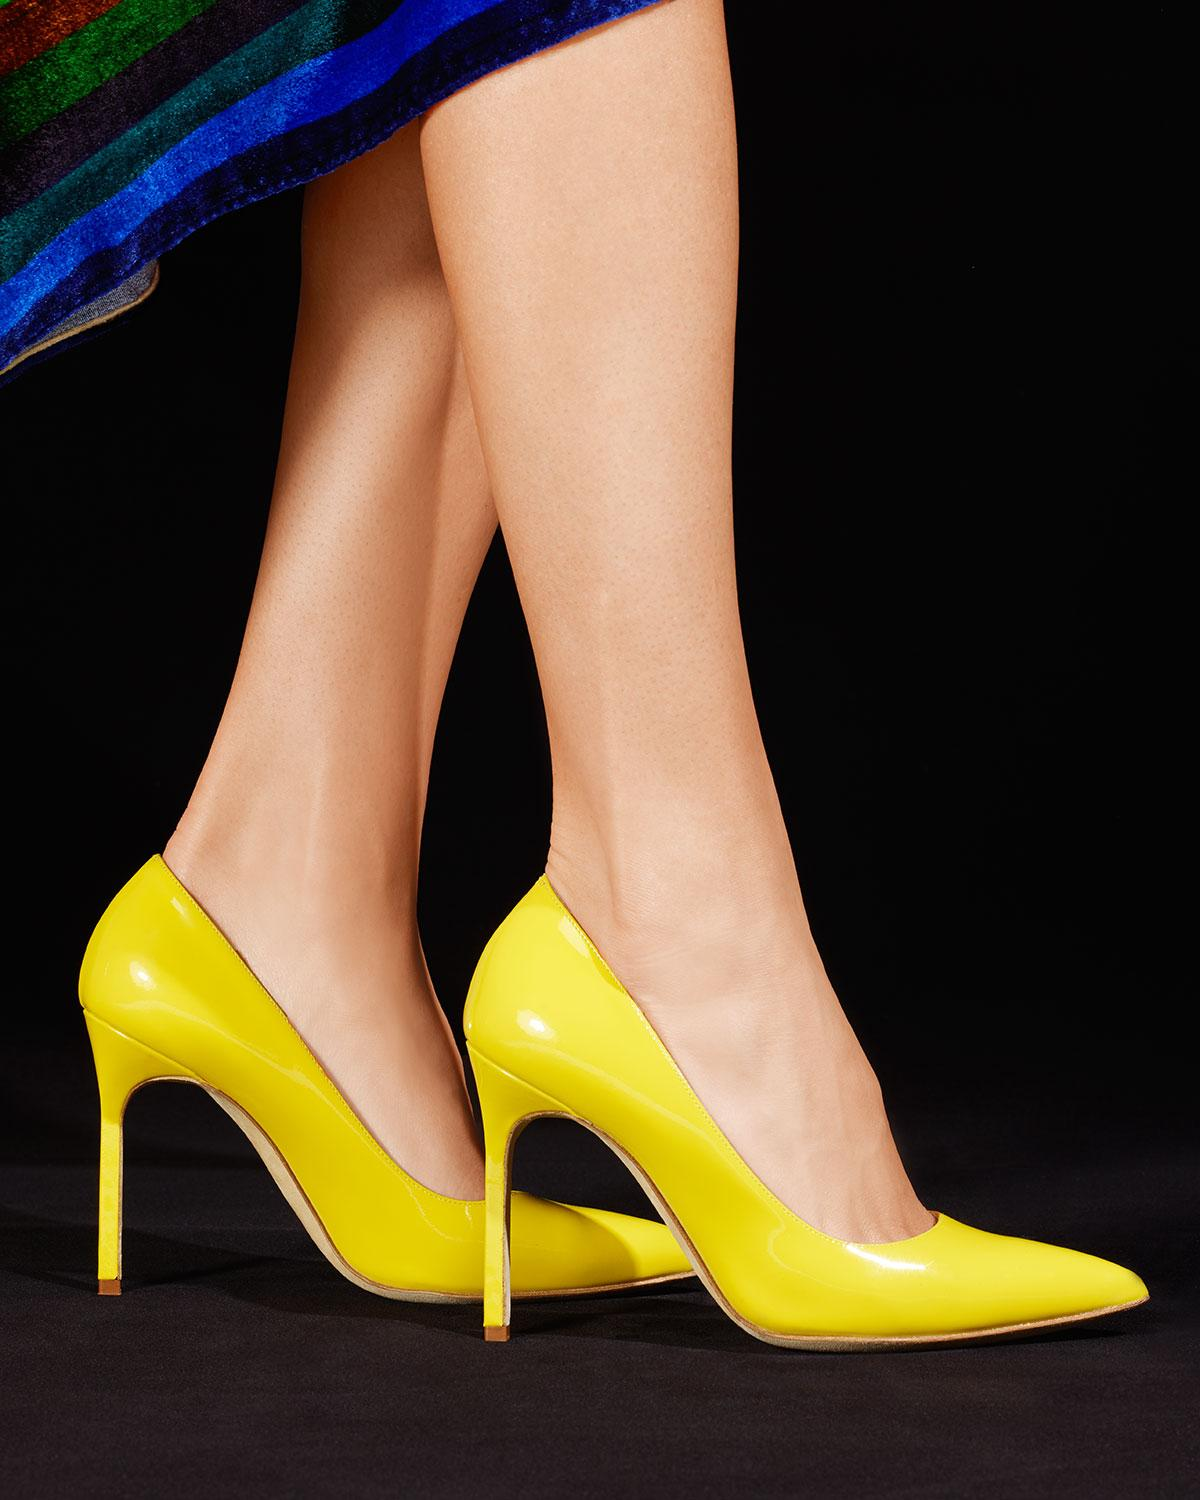 deee9743f1c Lyst - Manolo Blahnik Bb Patent 105mm Pointed-toe Pumps in Yellow